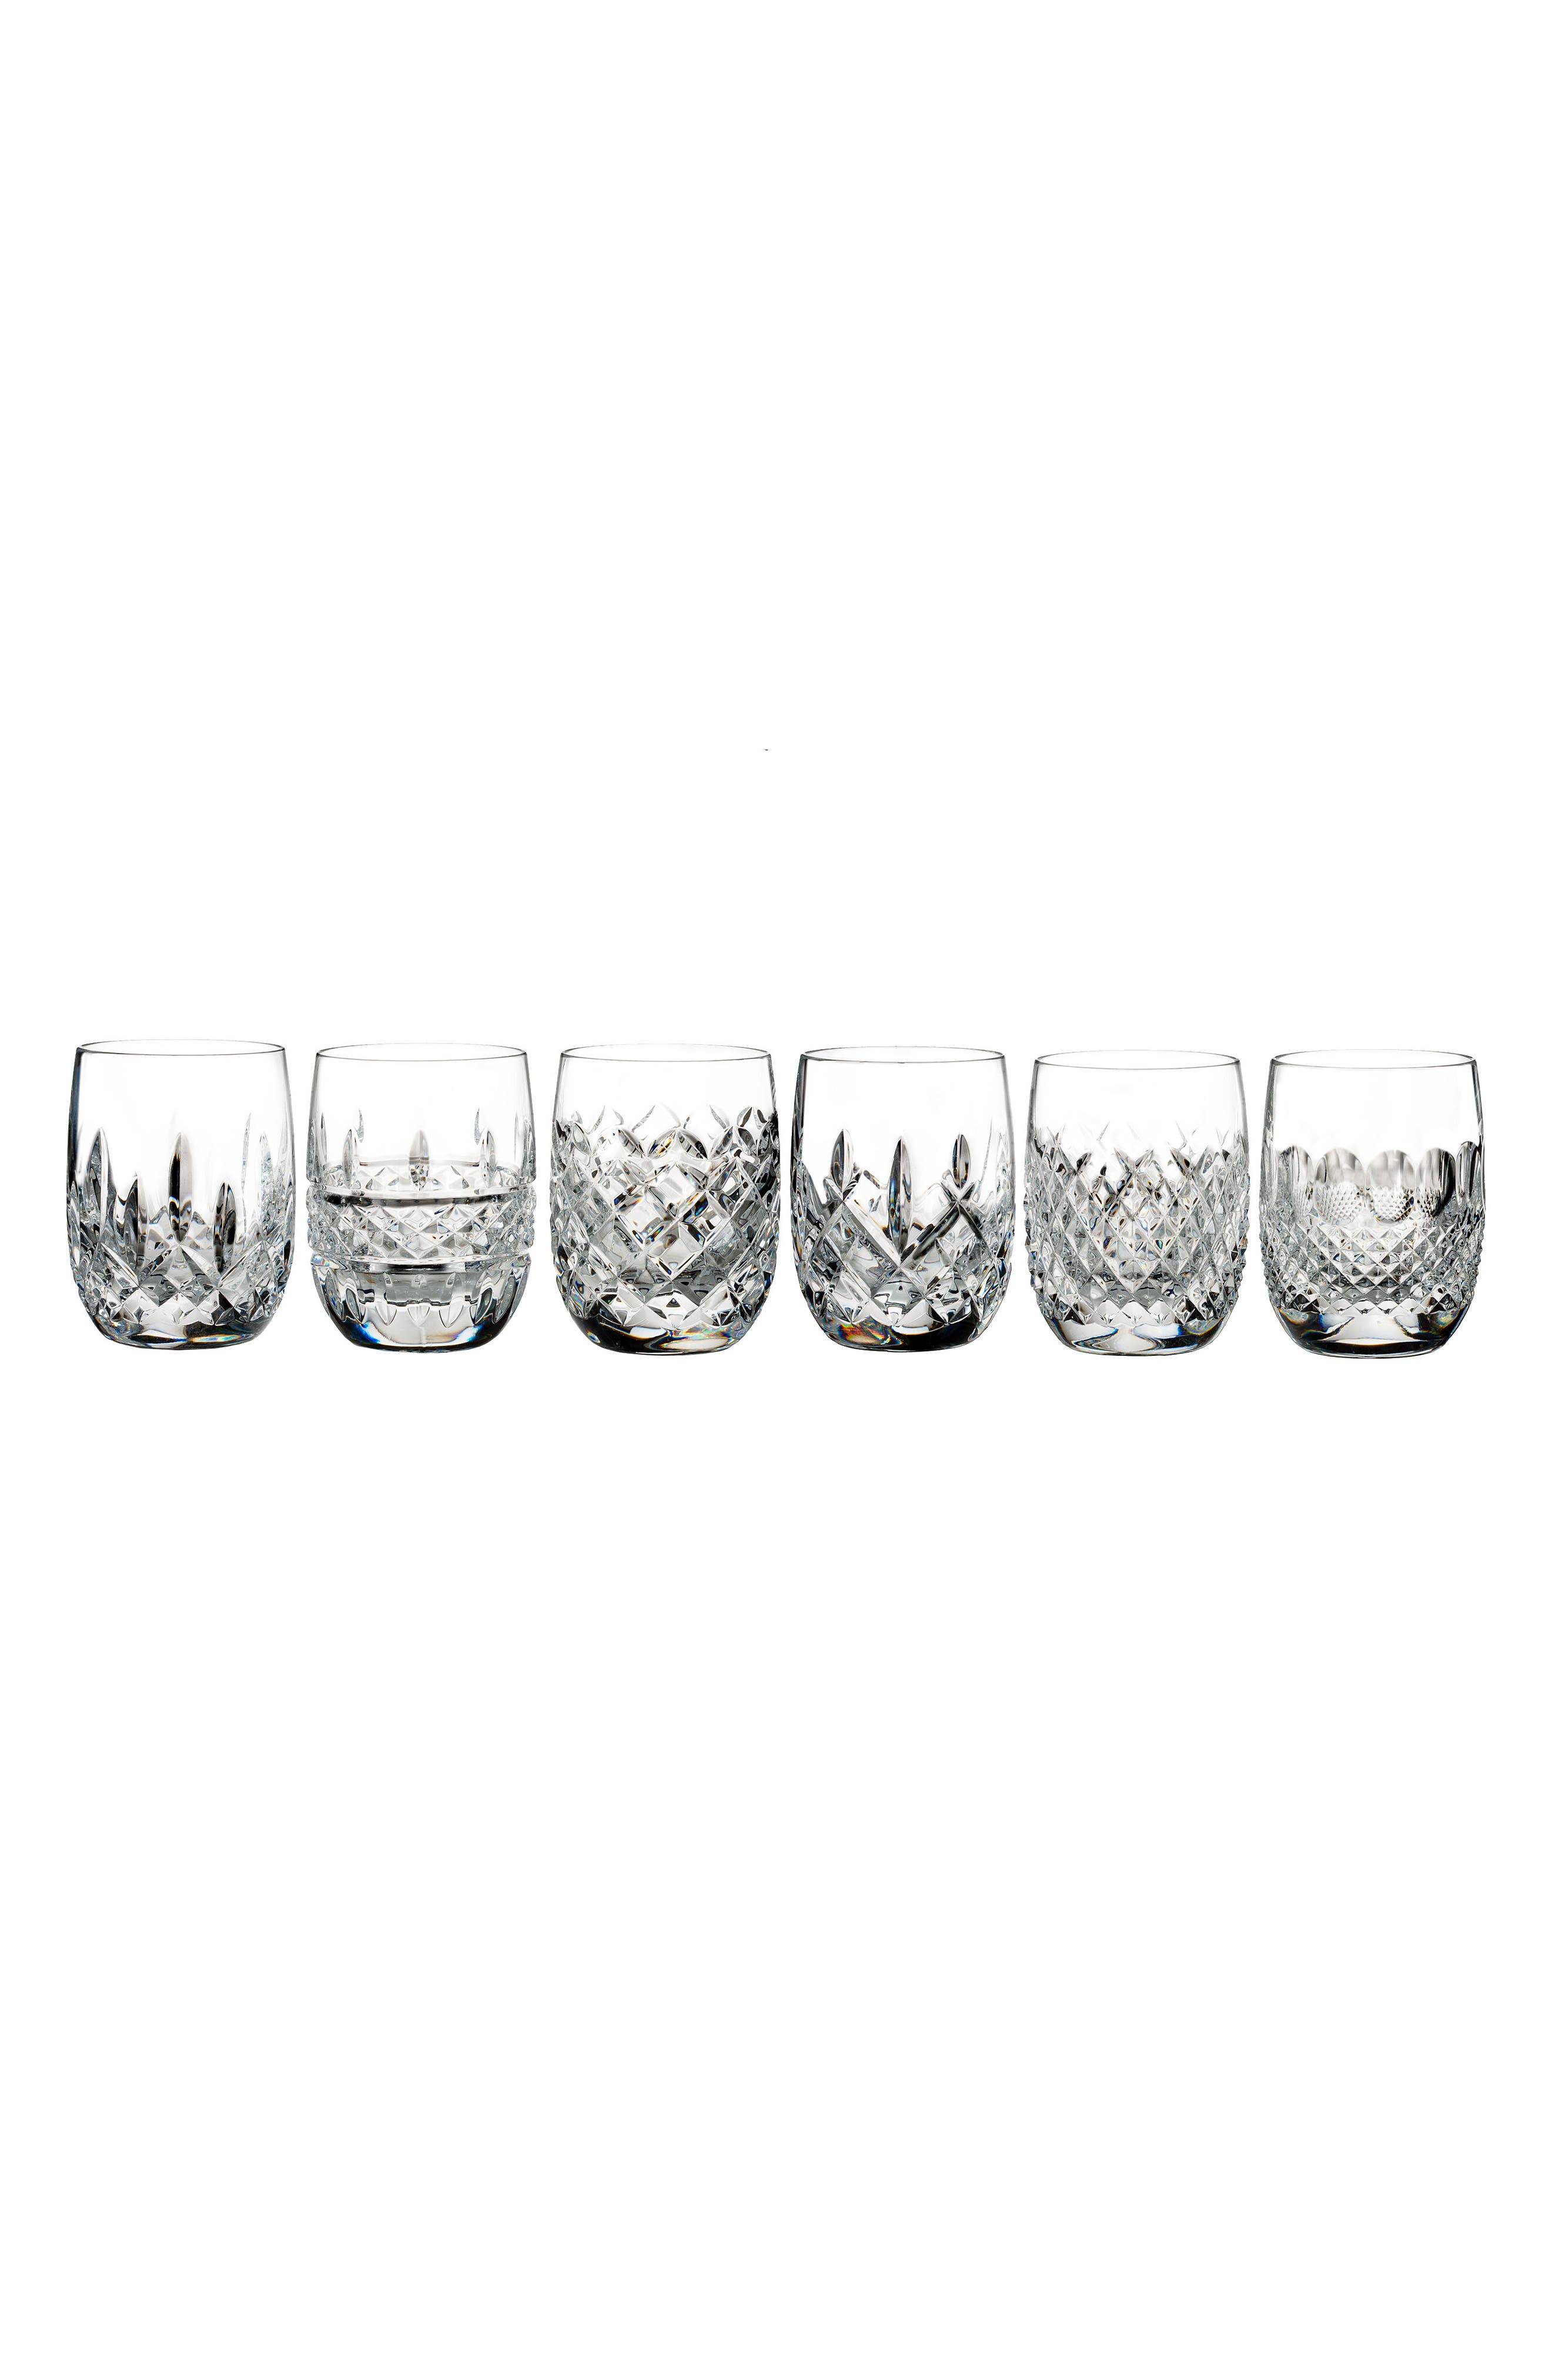 Connoisseur Set of 6 Lead Crystal Tumblers,                             Main thumbnail 1, color,                             100